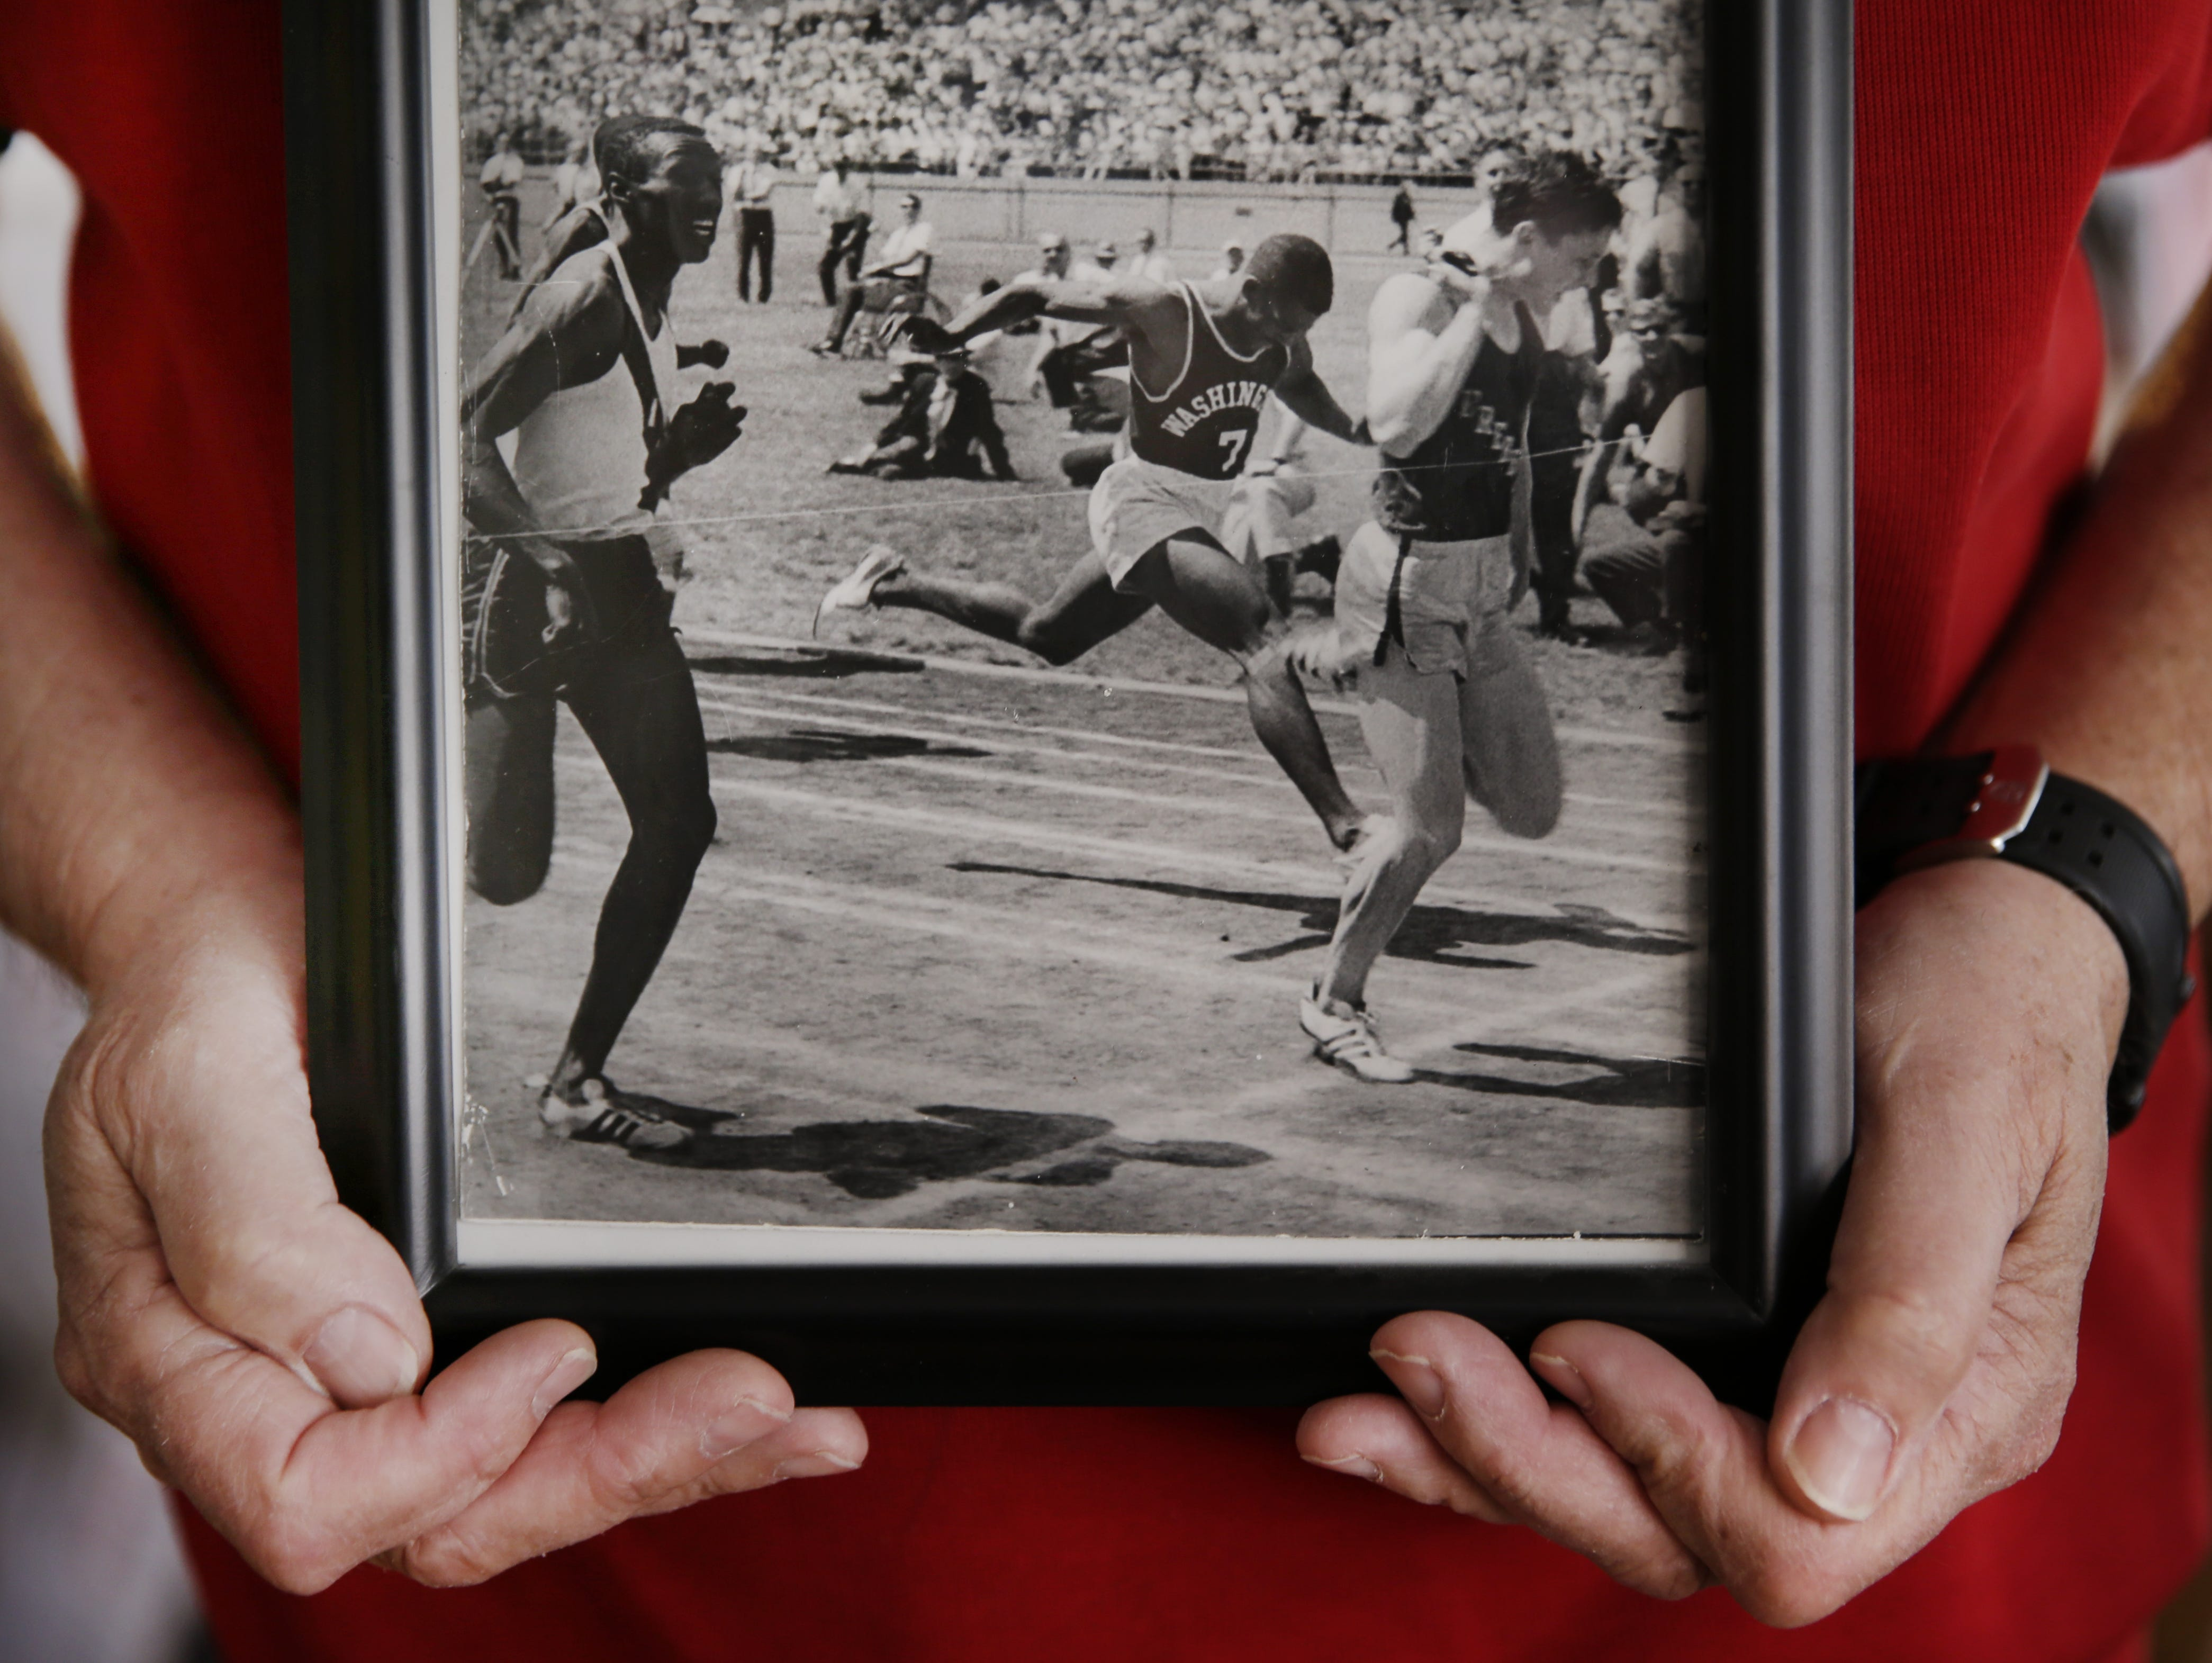 Clyde Peach holds a photo of himself breaking the tape in the 100 in May 1966.